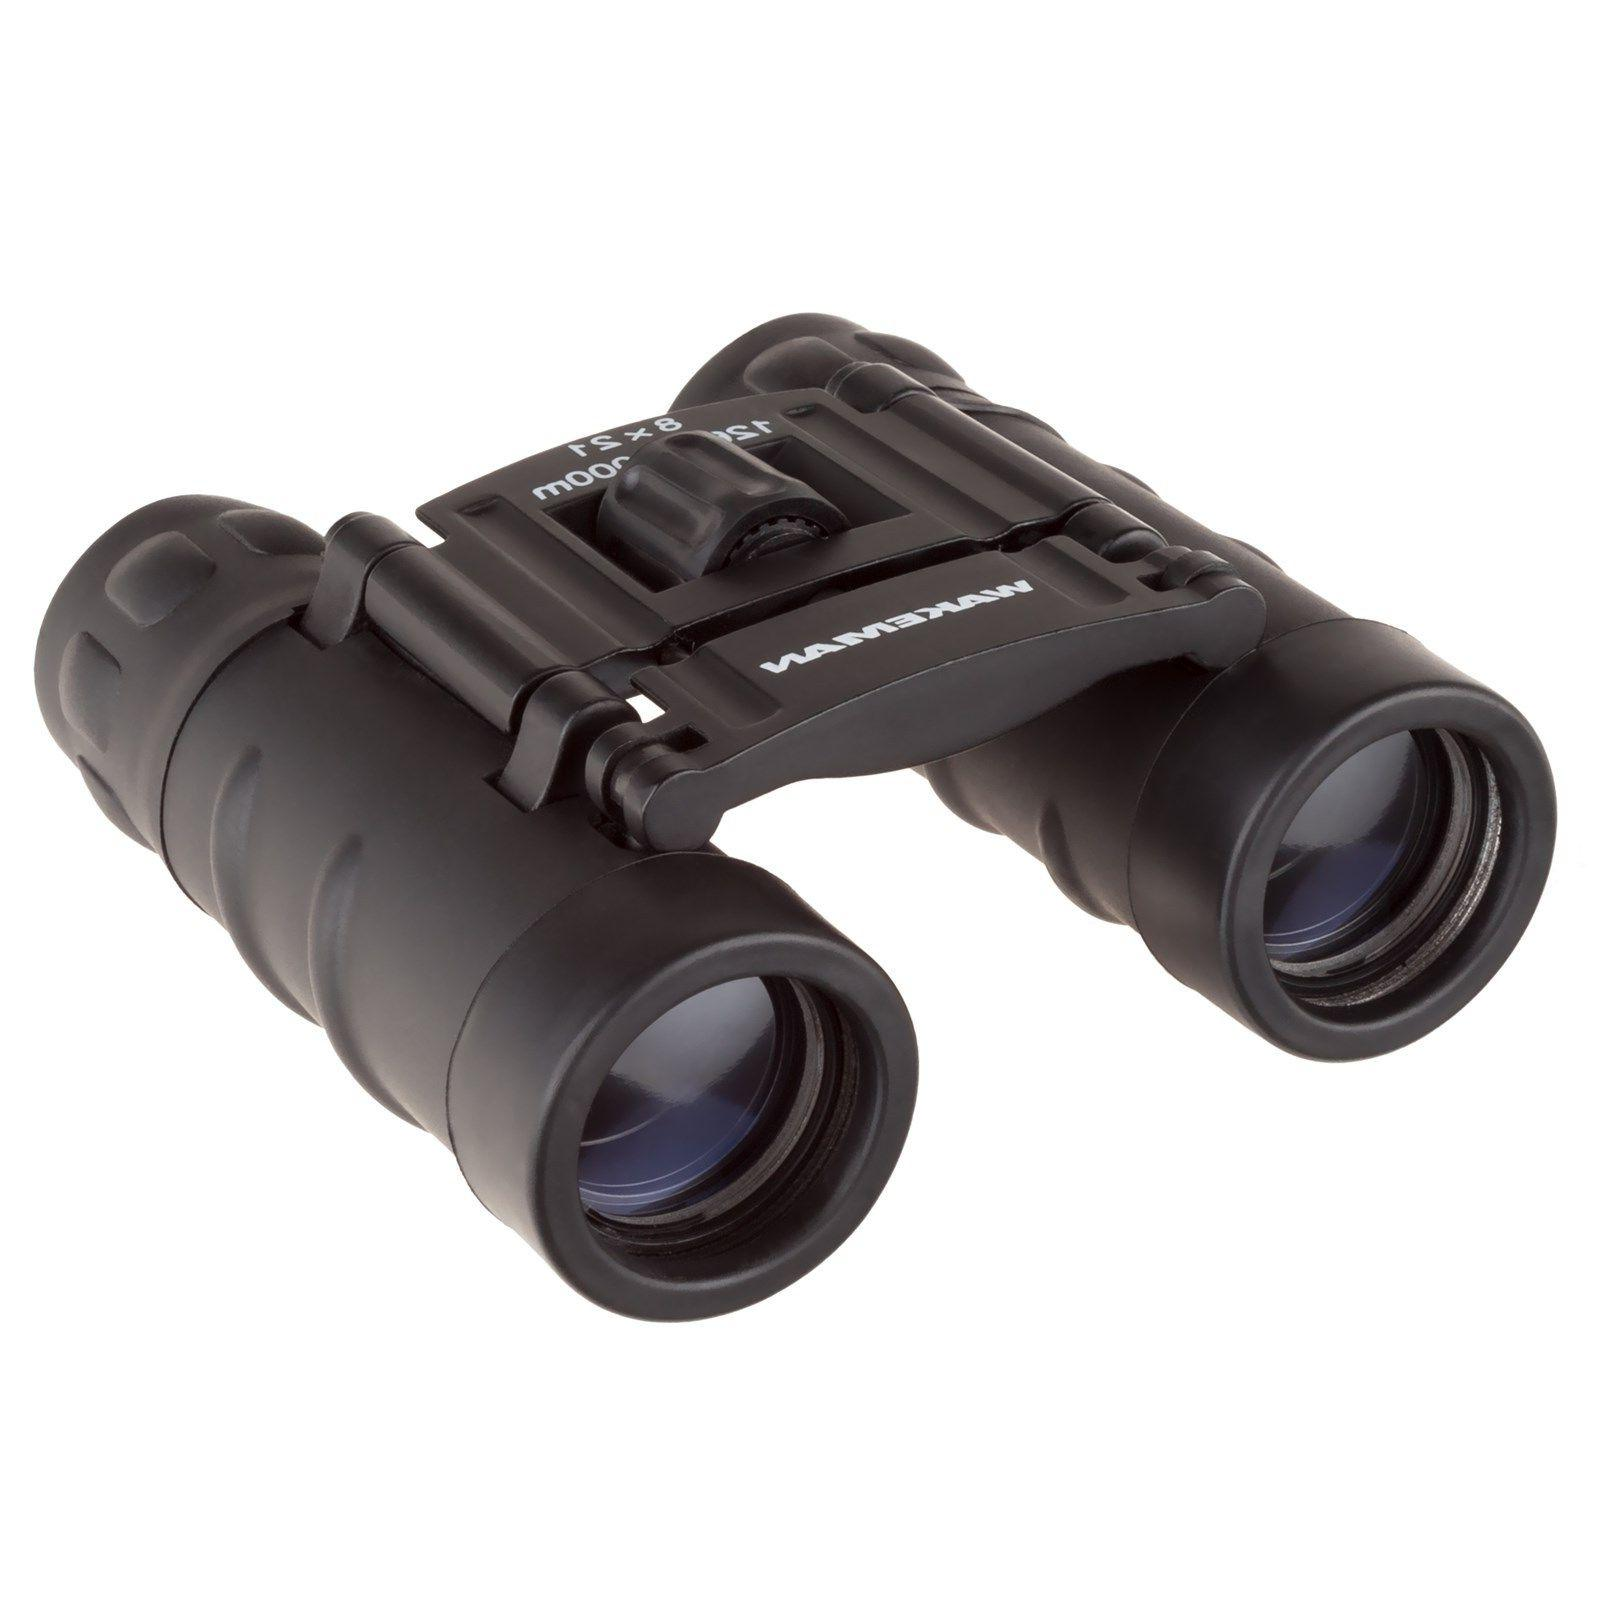 8 x 21mm Compact Binoculars Pocket Size Folding & Adjustable